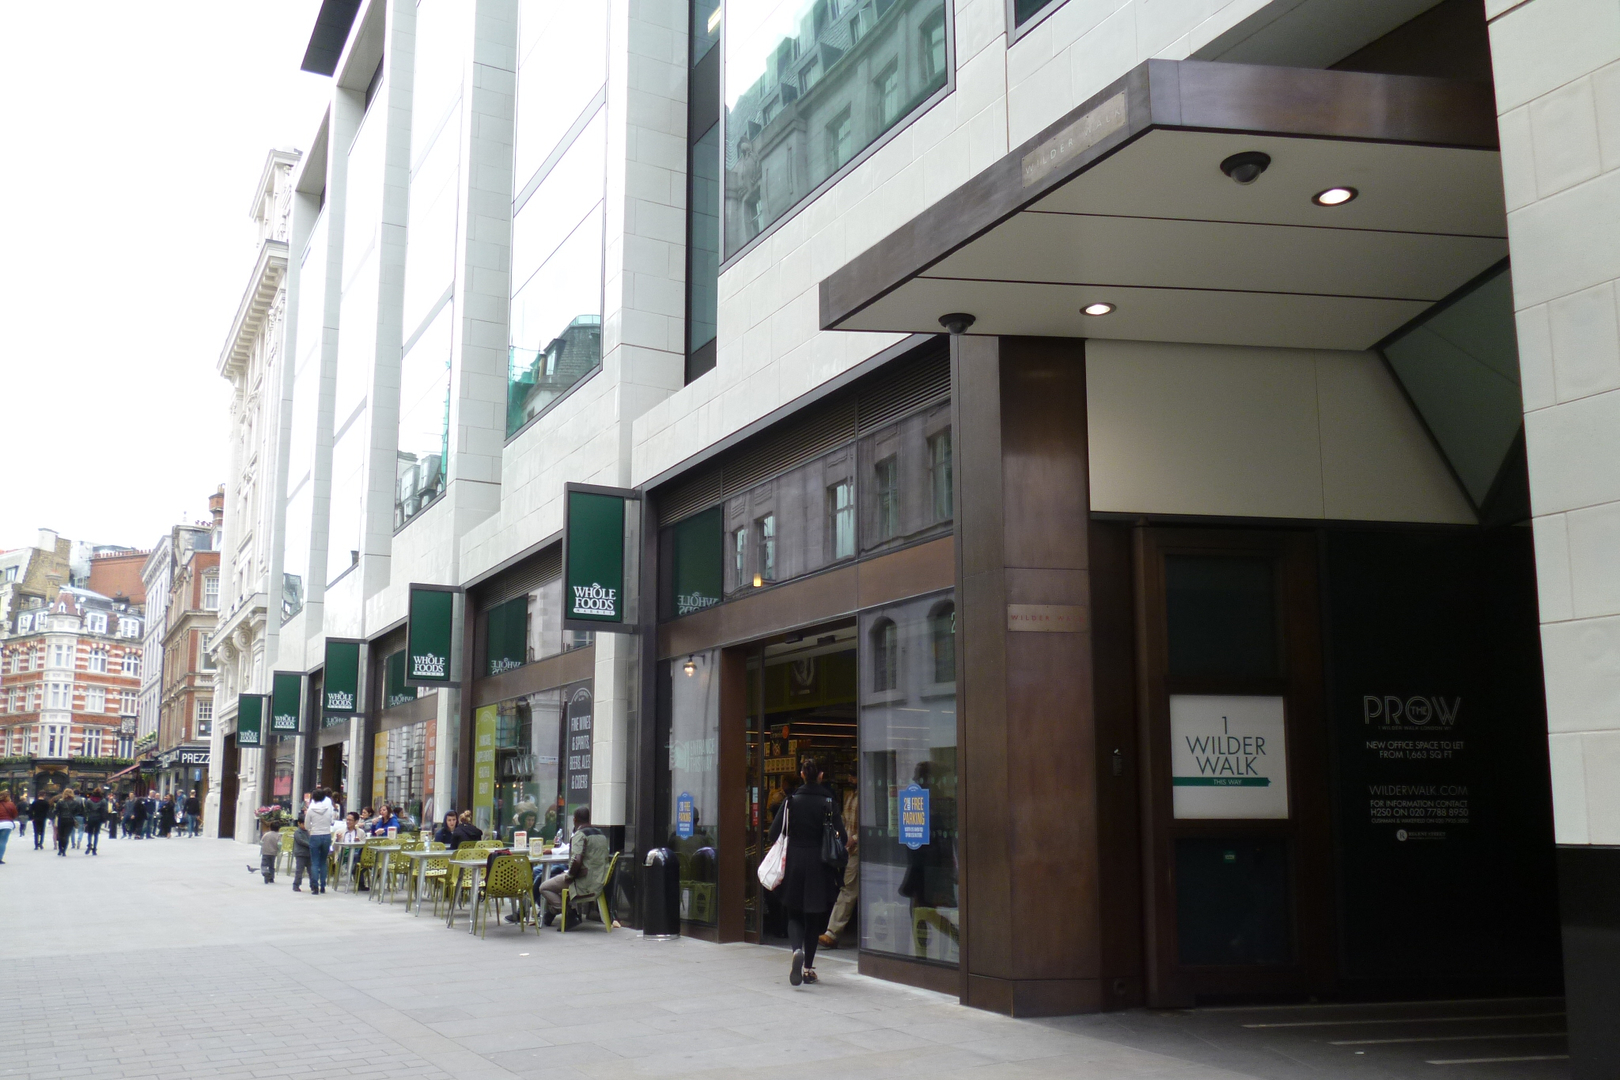 wfm-piccadilly-exterior-01